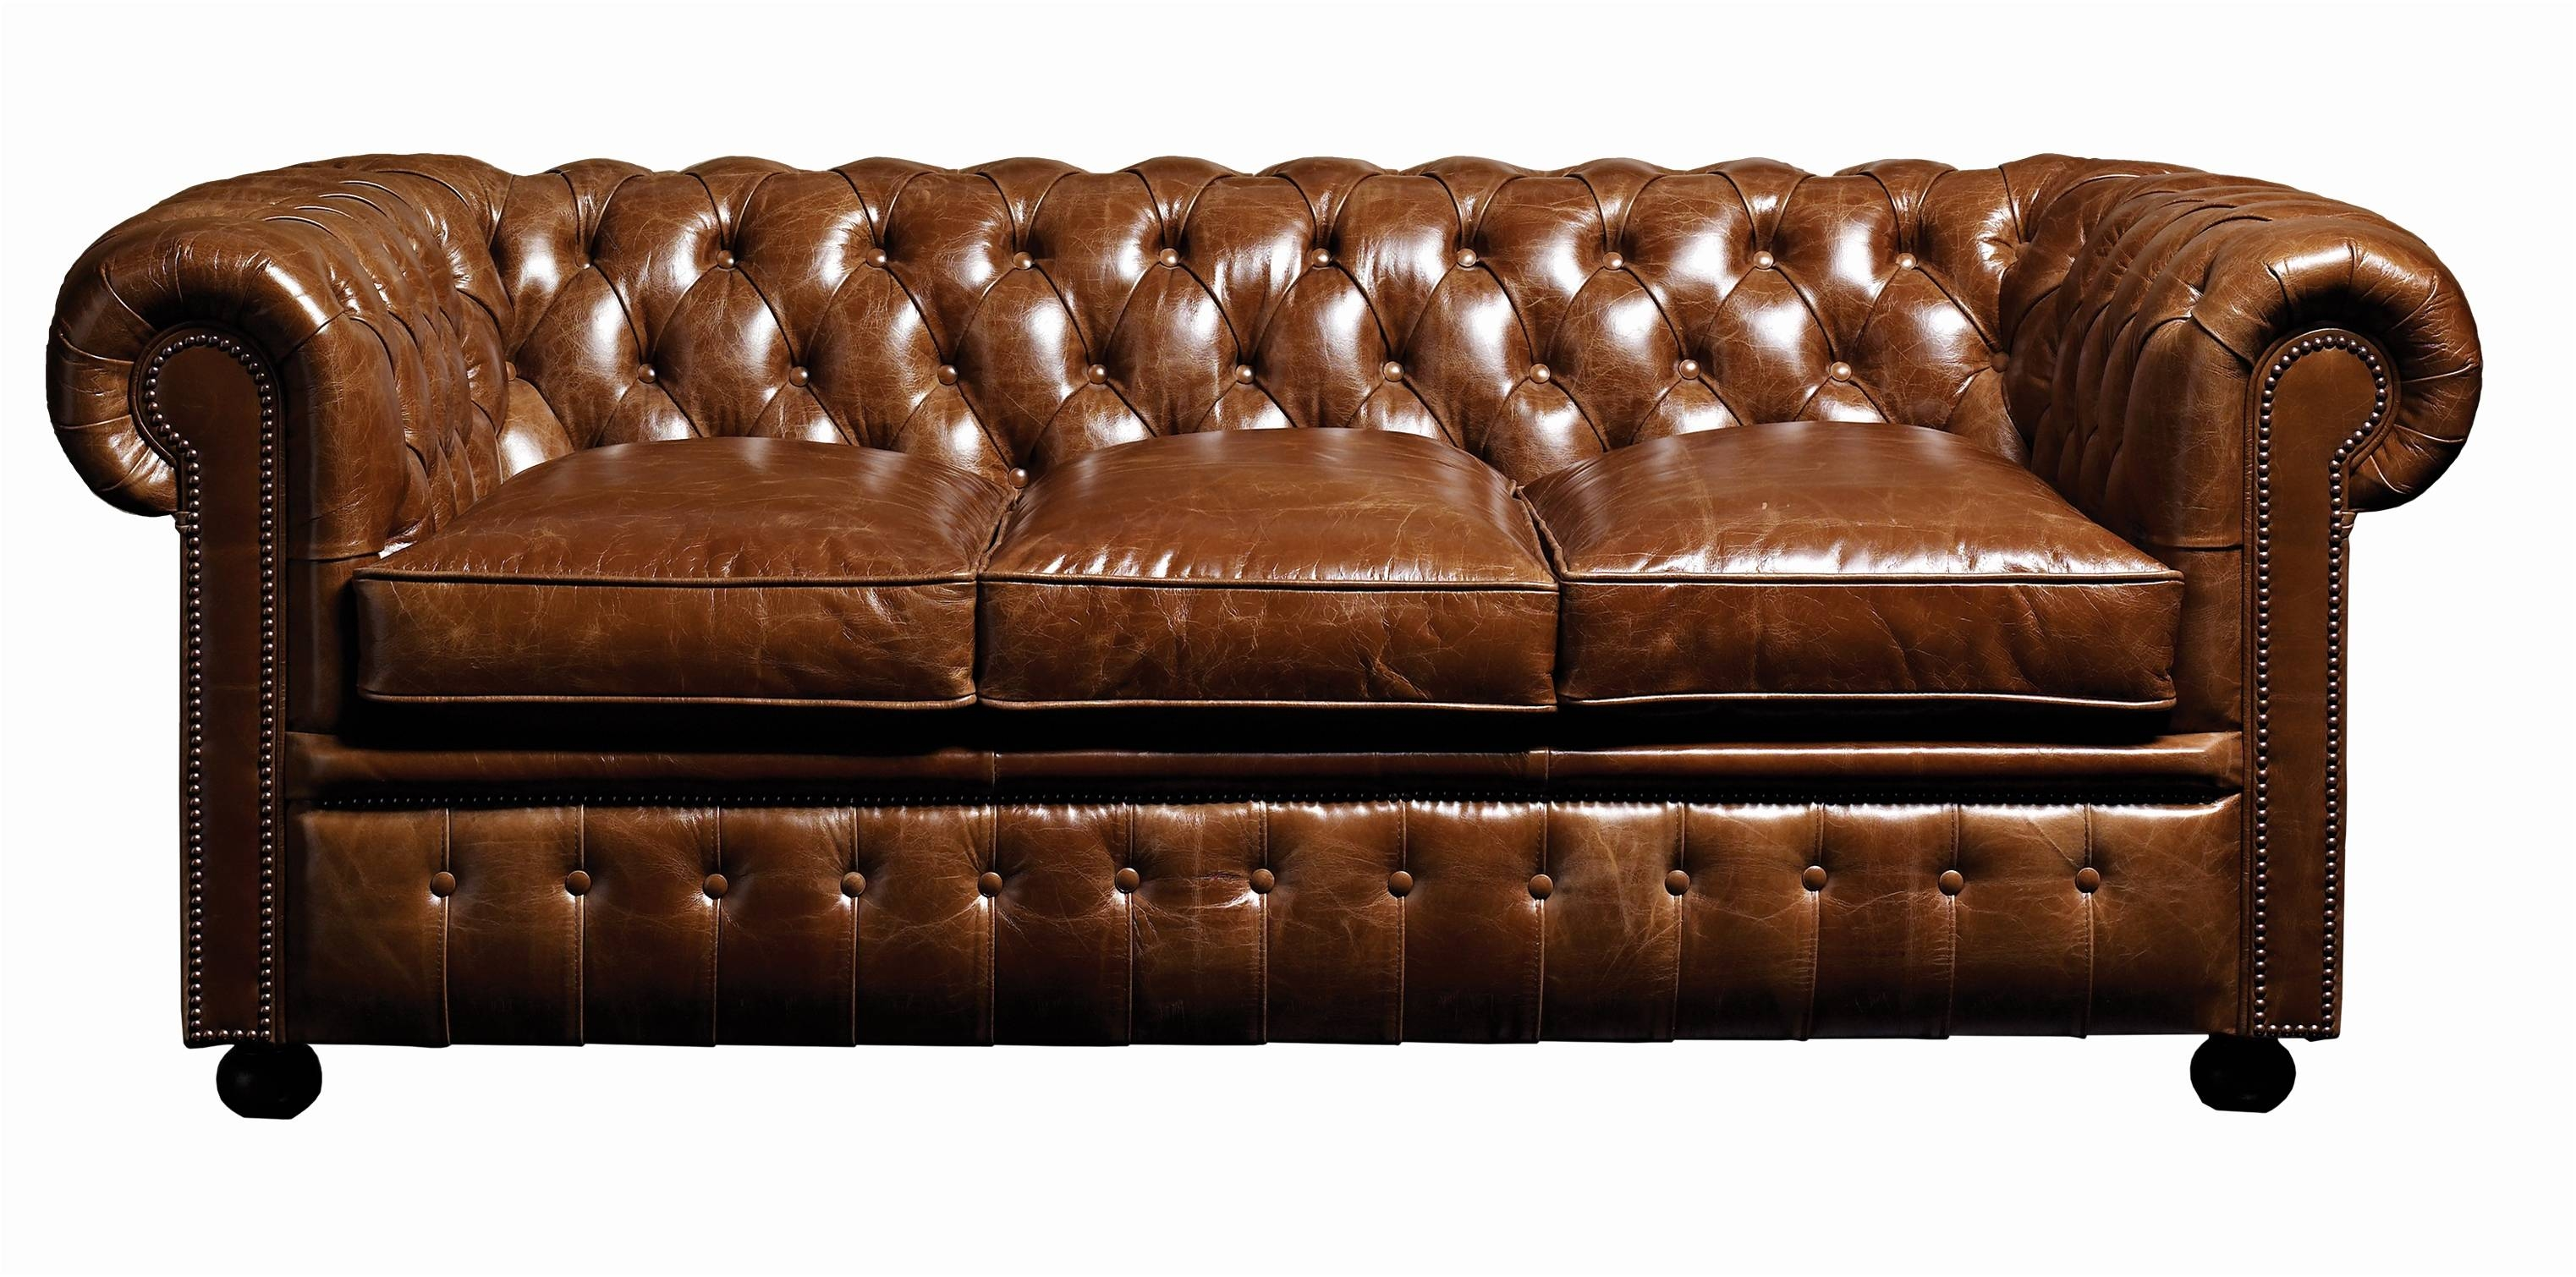 Best Of Chesterfield Sofa Craigslist Luxury - Sofa Furnitures with Craigslist Chesterfield Sofas (Image 2 of 15)